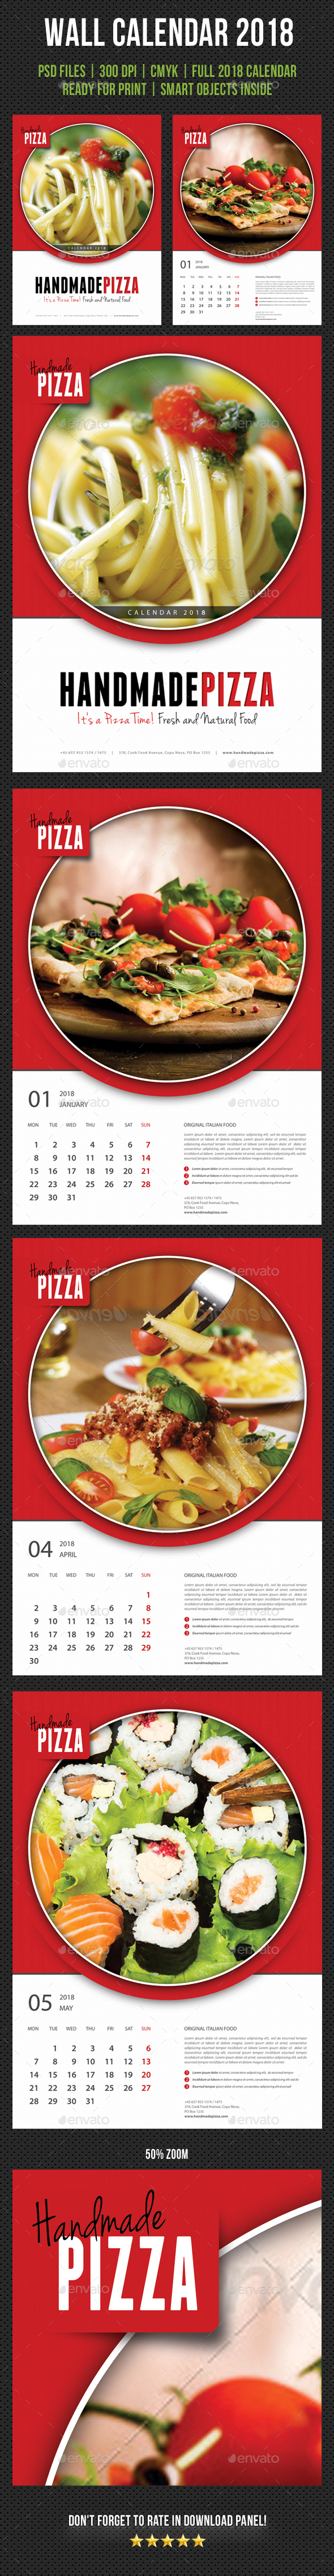 Cook And Food Wall Calendar 2018